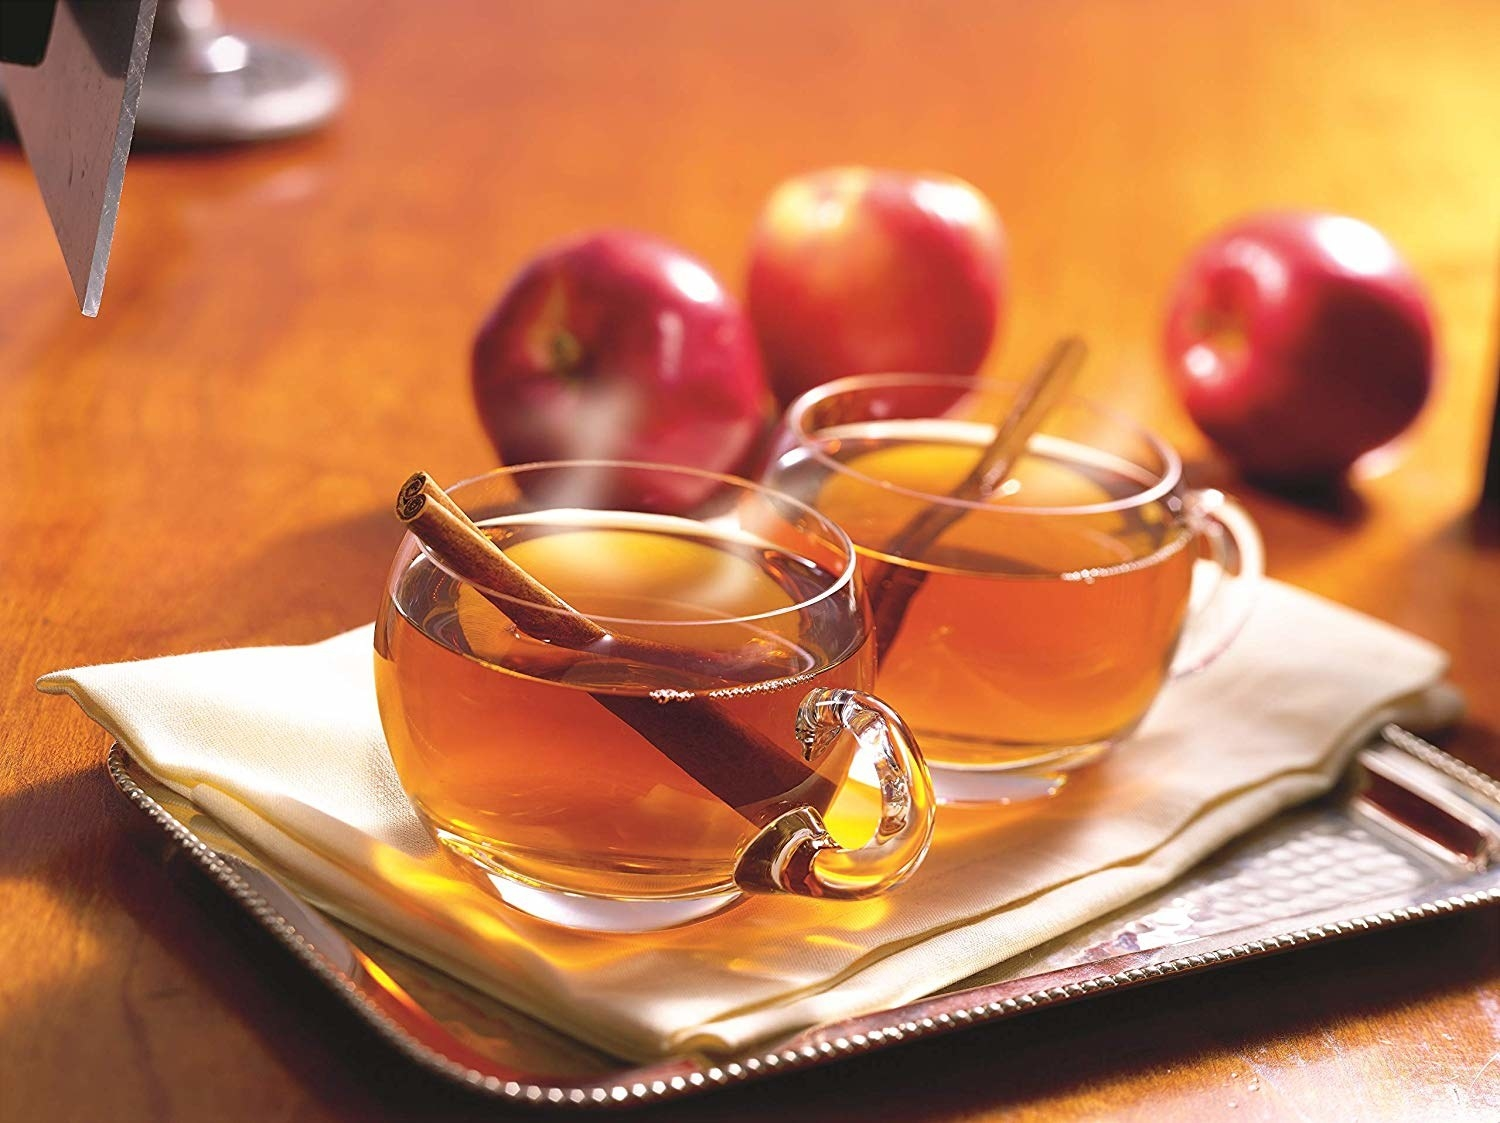 Two mugs of the golden-brown cider